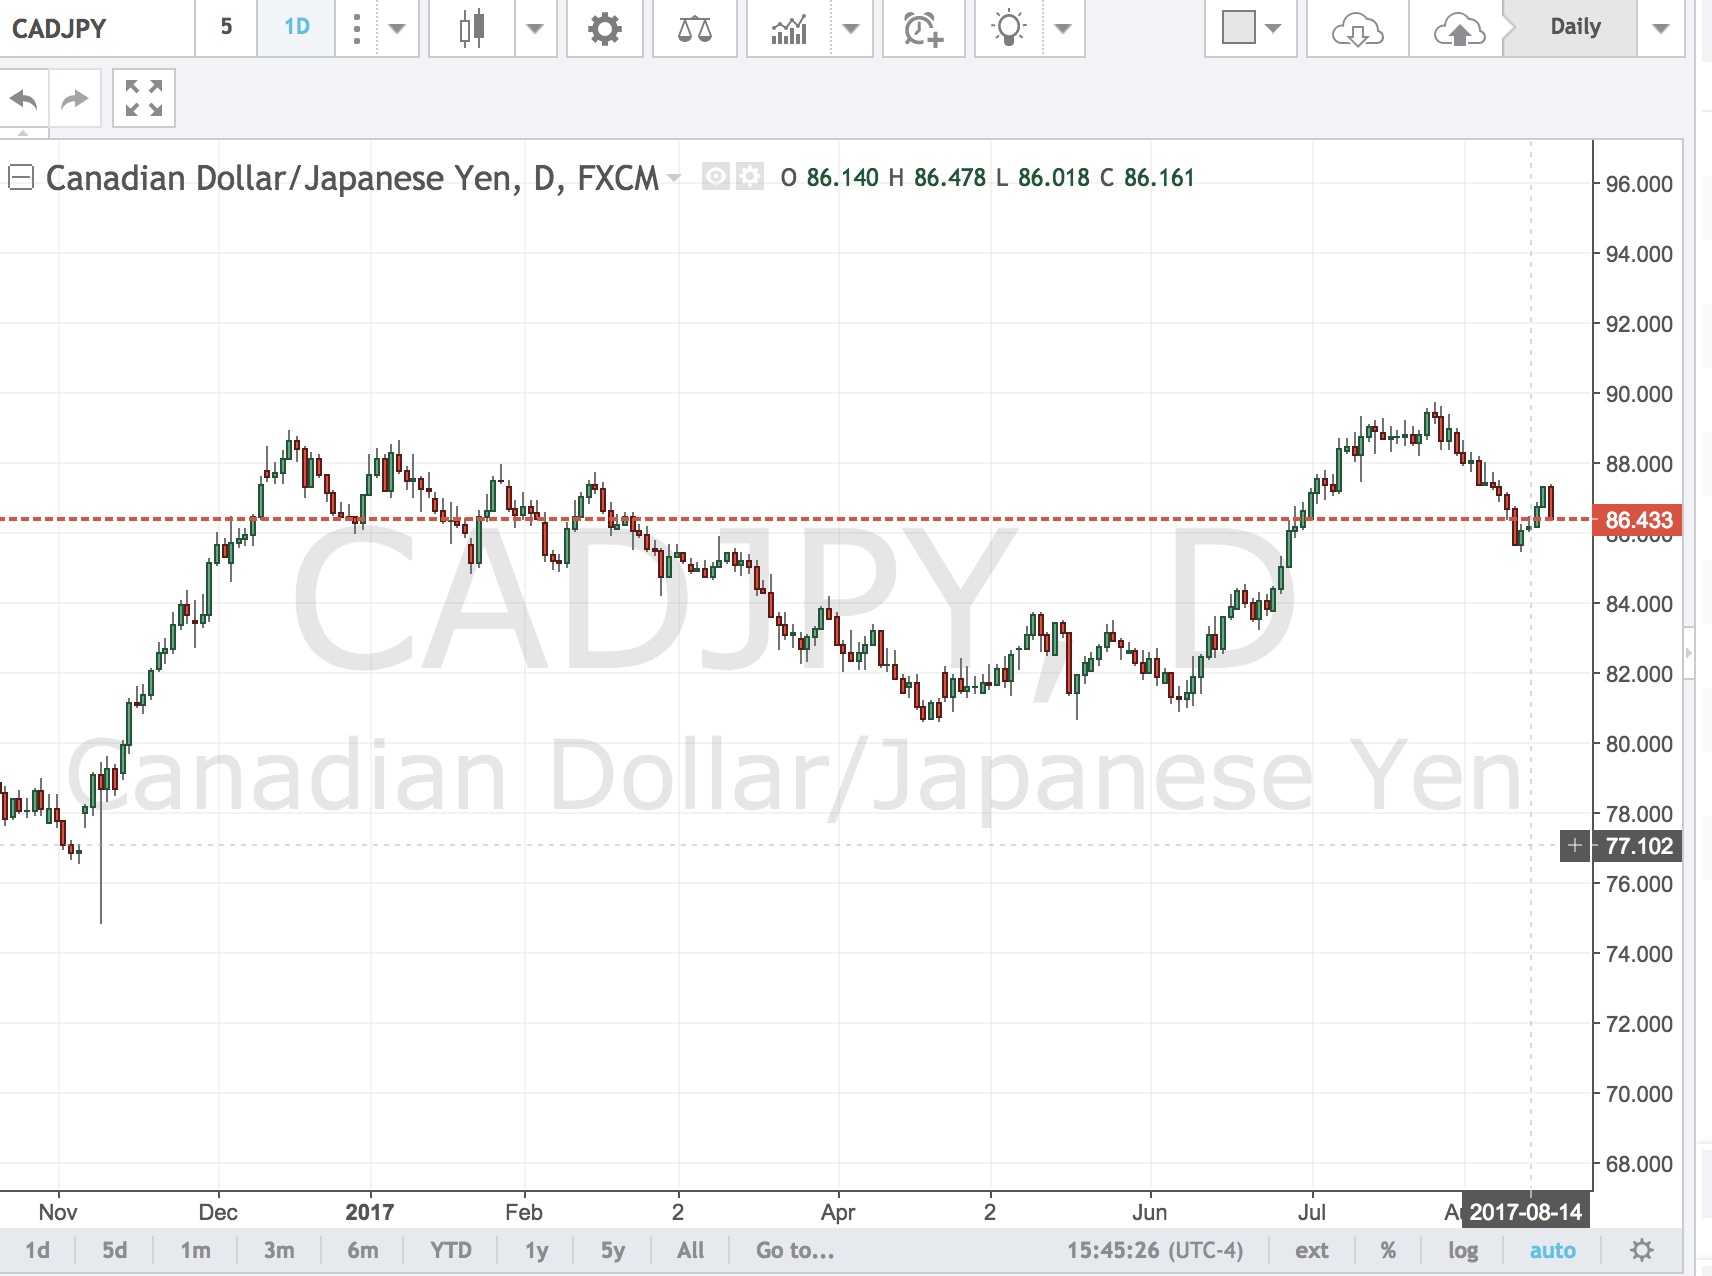 CADJPY – Back to 85.00?